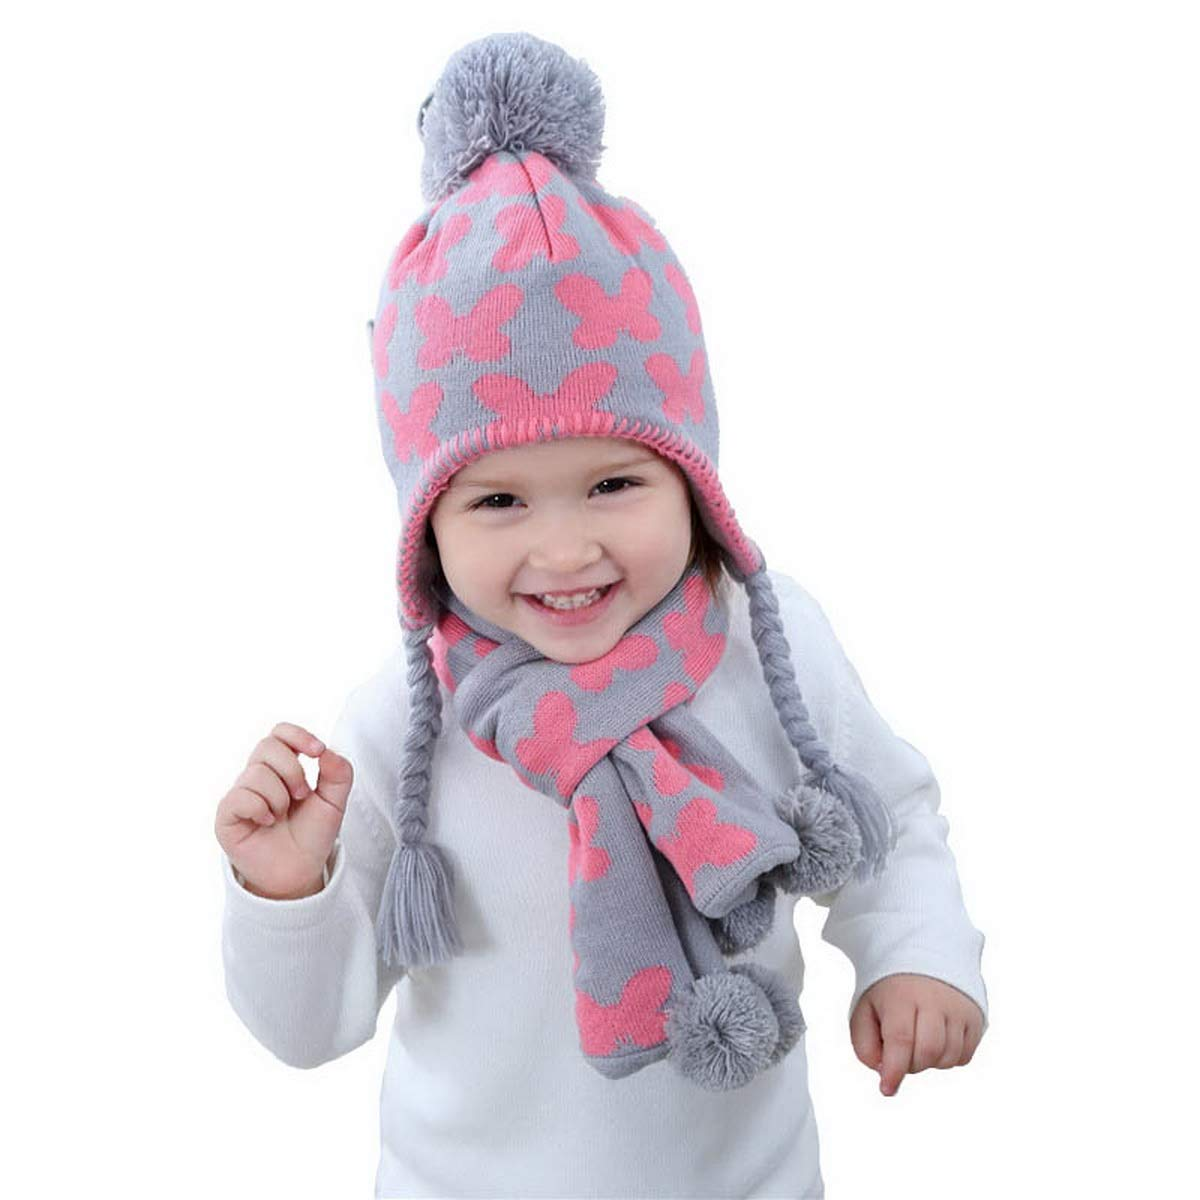 93db74f8a50 Get Quotations · Little Girls Butterfly Beanie Hat and Scarf Set Winter  Warm Set for Girls